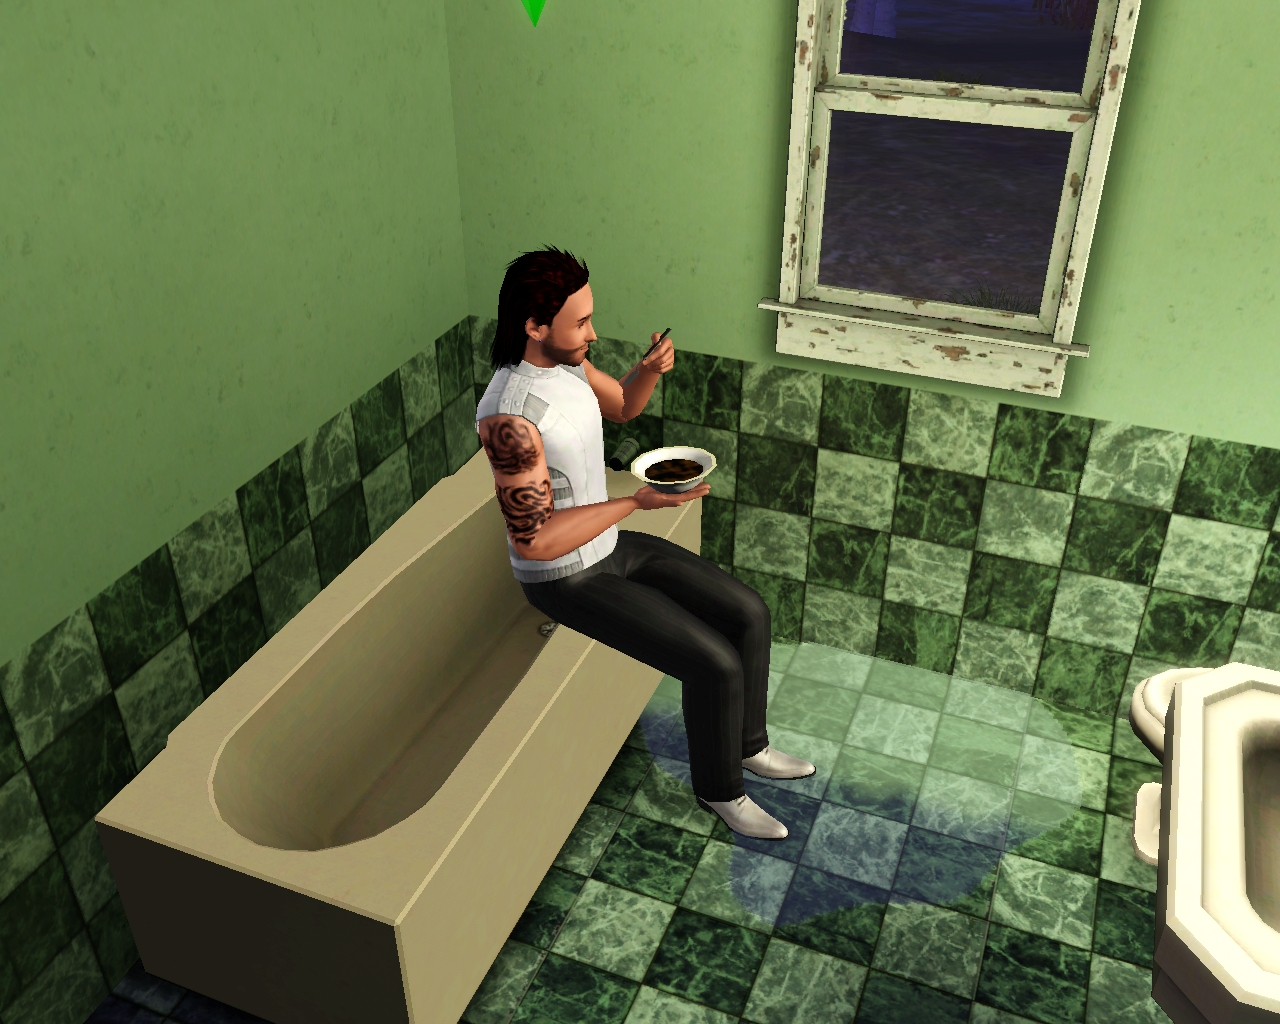 Sim eating while sitting on the bathtub  Hunger The Sims Wiki Fandom  powered by Wikia. Sim Baby Toilet